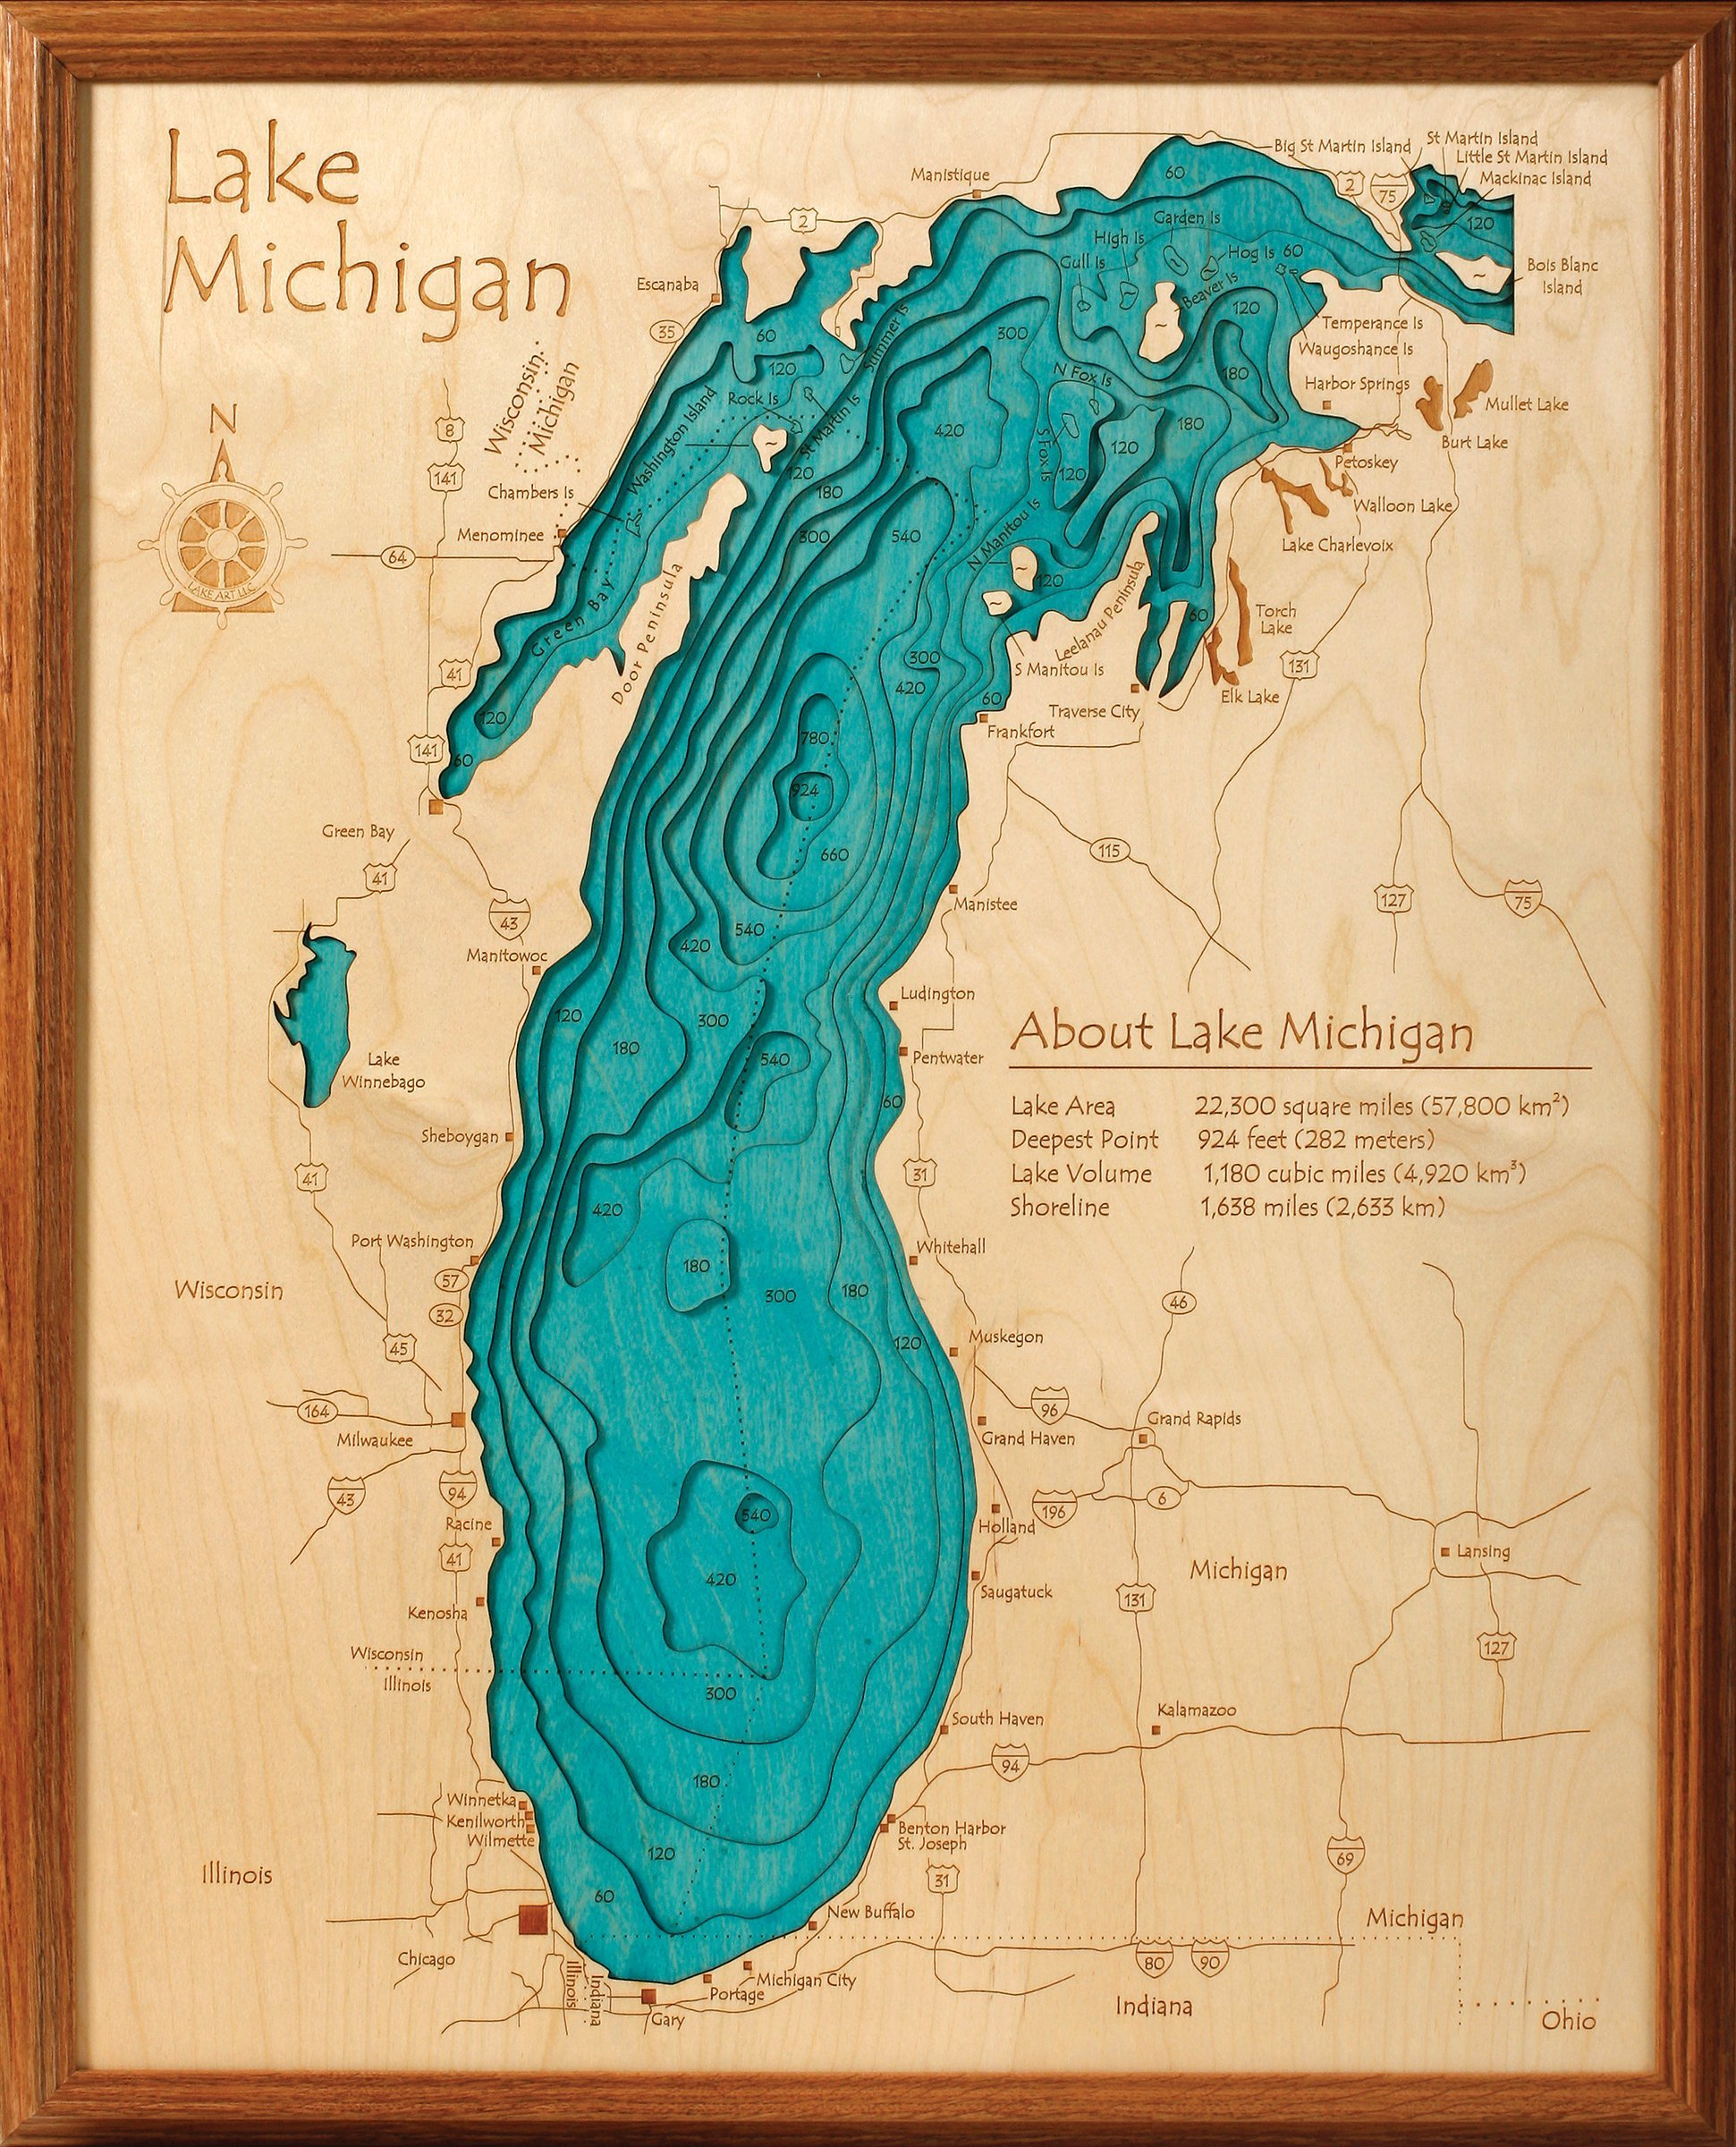 Lake Michigan in Great Lakes, GL - 3D Map 16 x 20 IN - Laser carved wood nautical chart and topographic depth map. by Long Lake Lifestyle